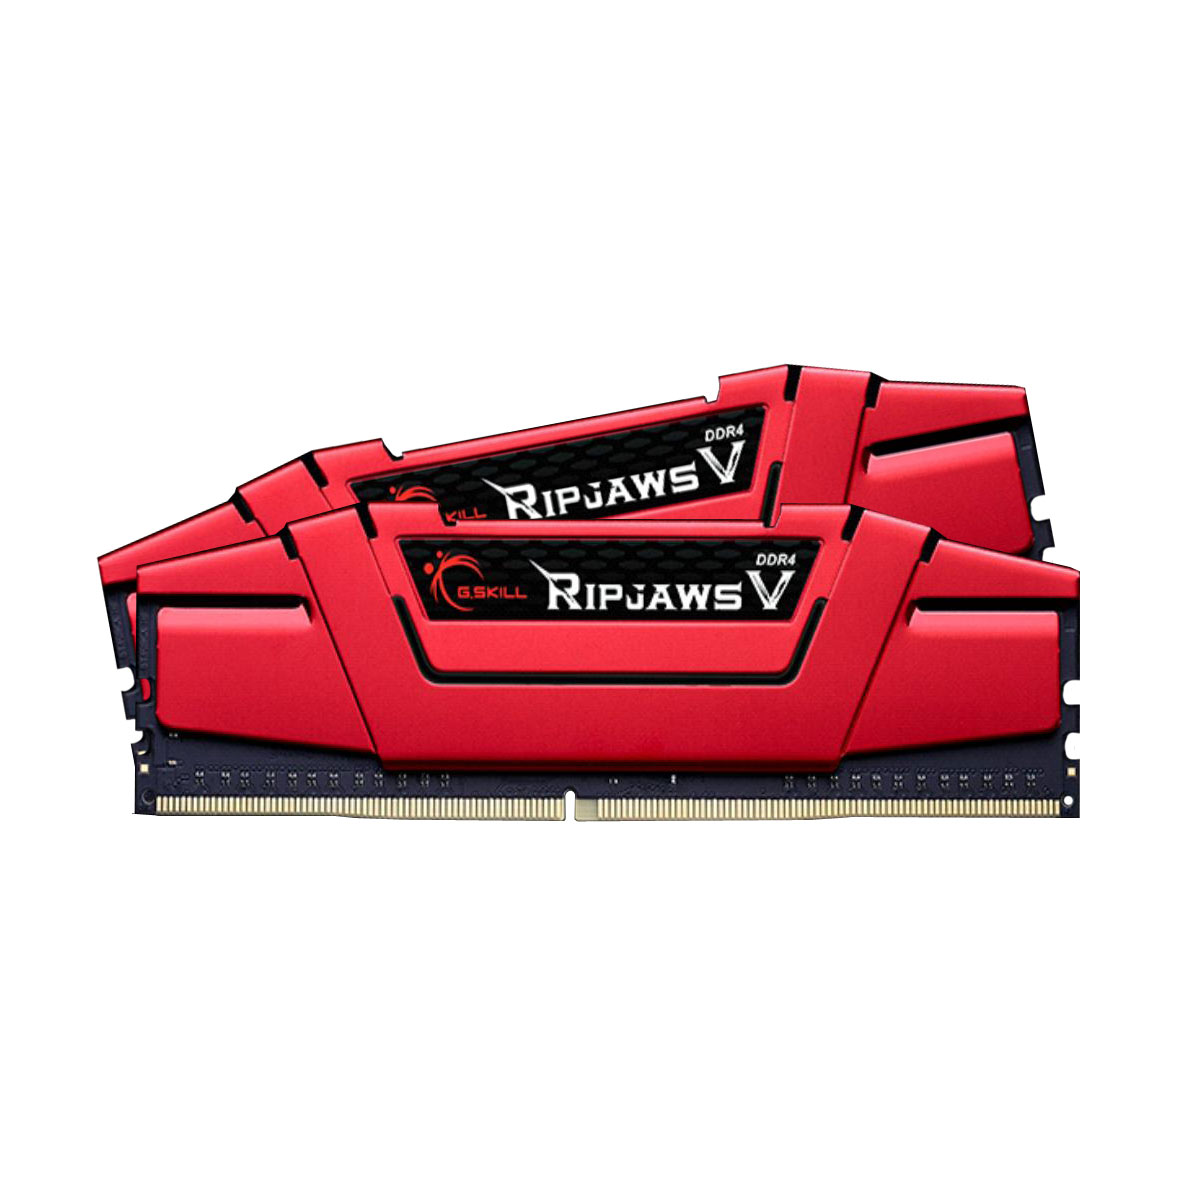 Mémoire PC G.Skill RipJaws 5 Series Rouge 16 Go (2x 8 Go) DDR4 3000 MHz CL15  Kit Dual Channel 2 barrettes de RAM DDR4 PC4-24000 - F4-3000C15D-16GVRB